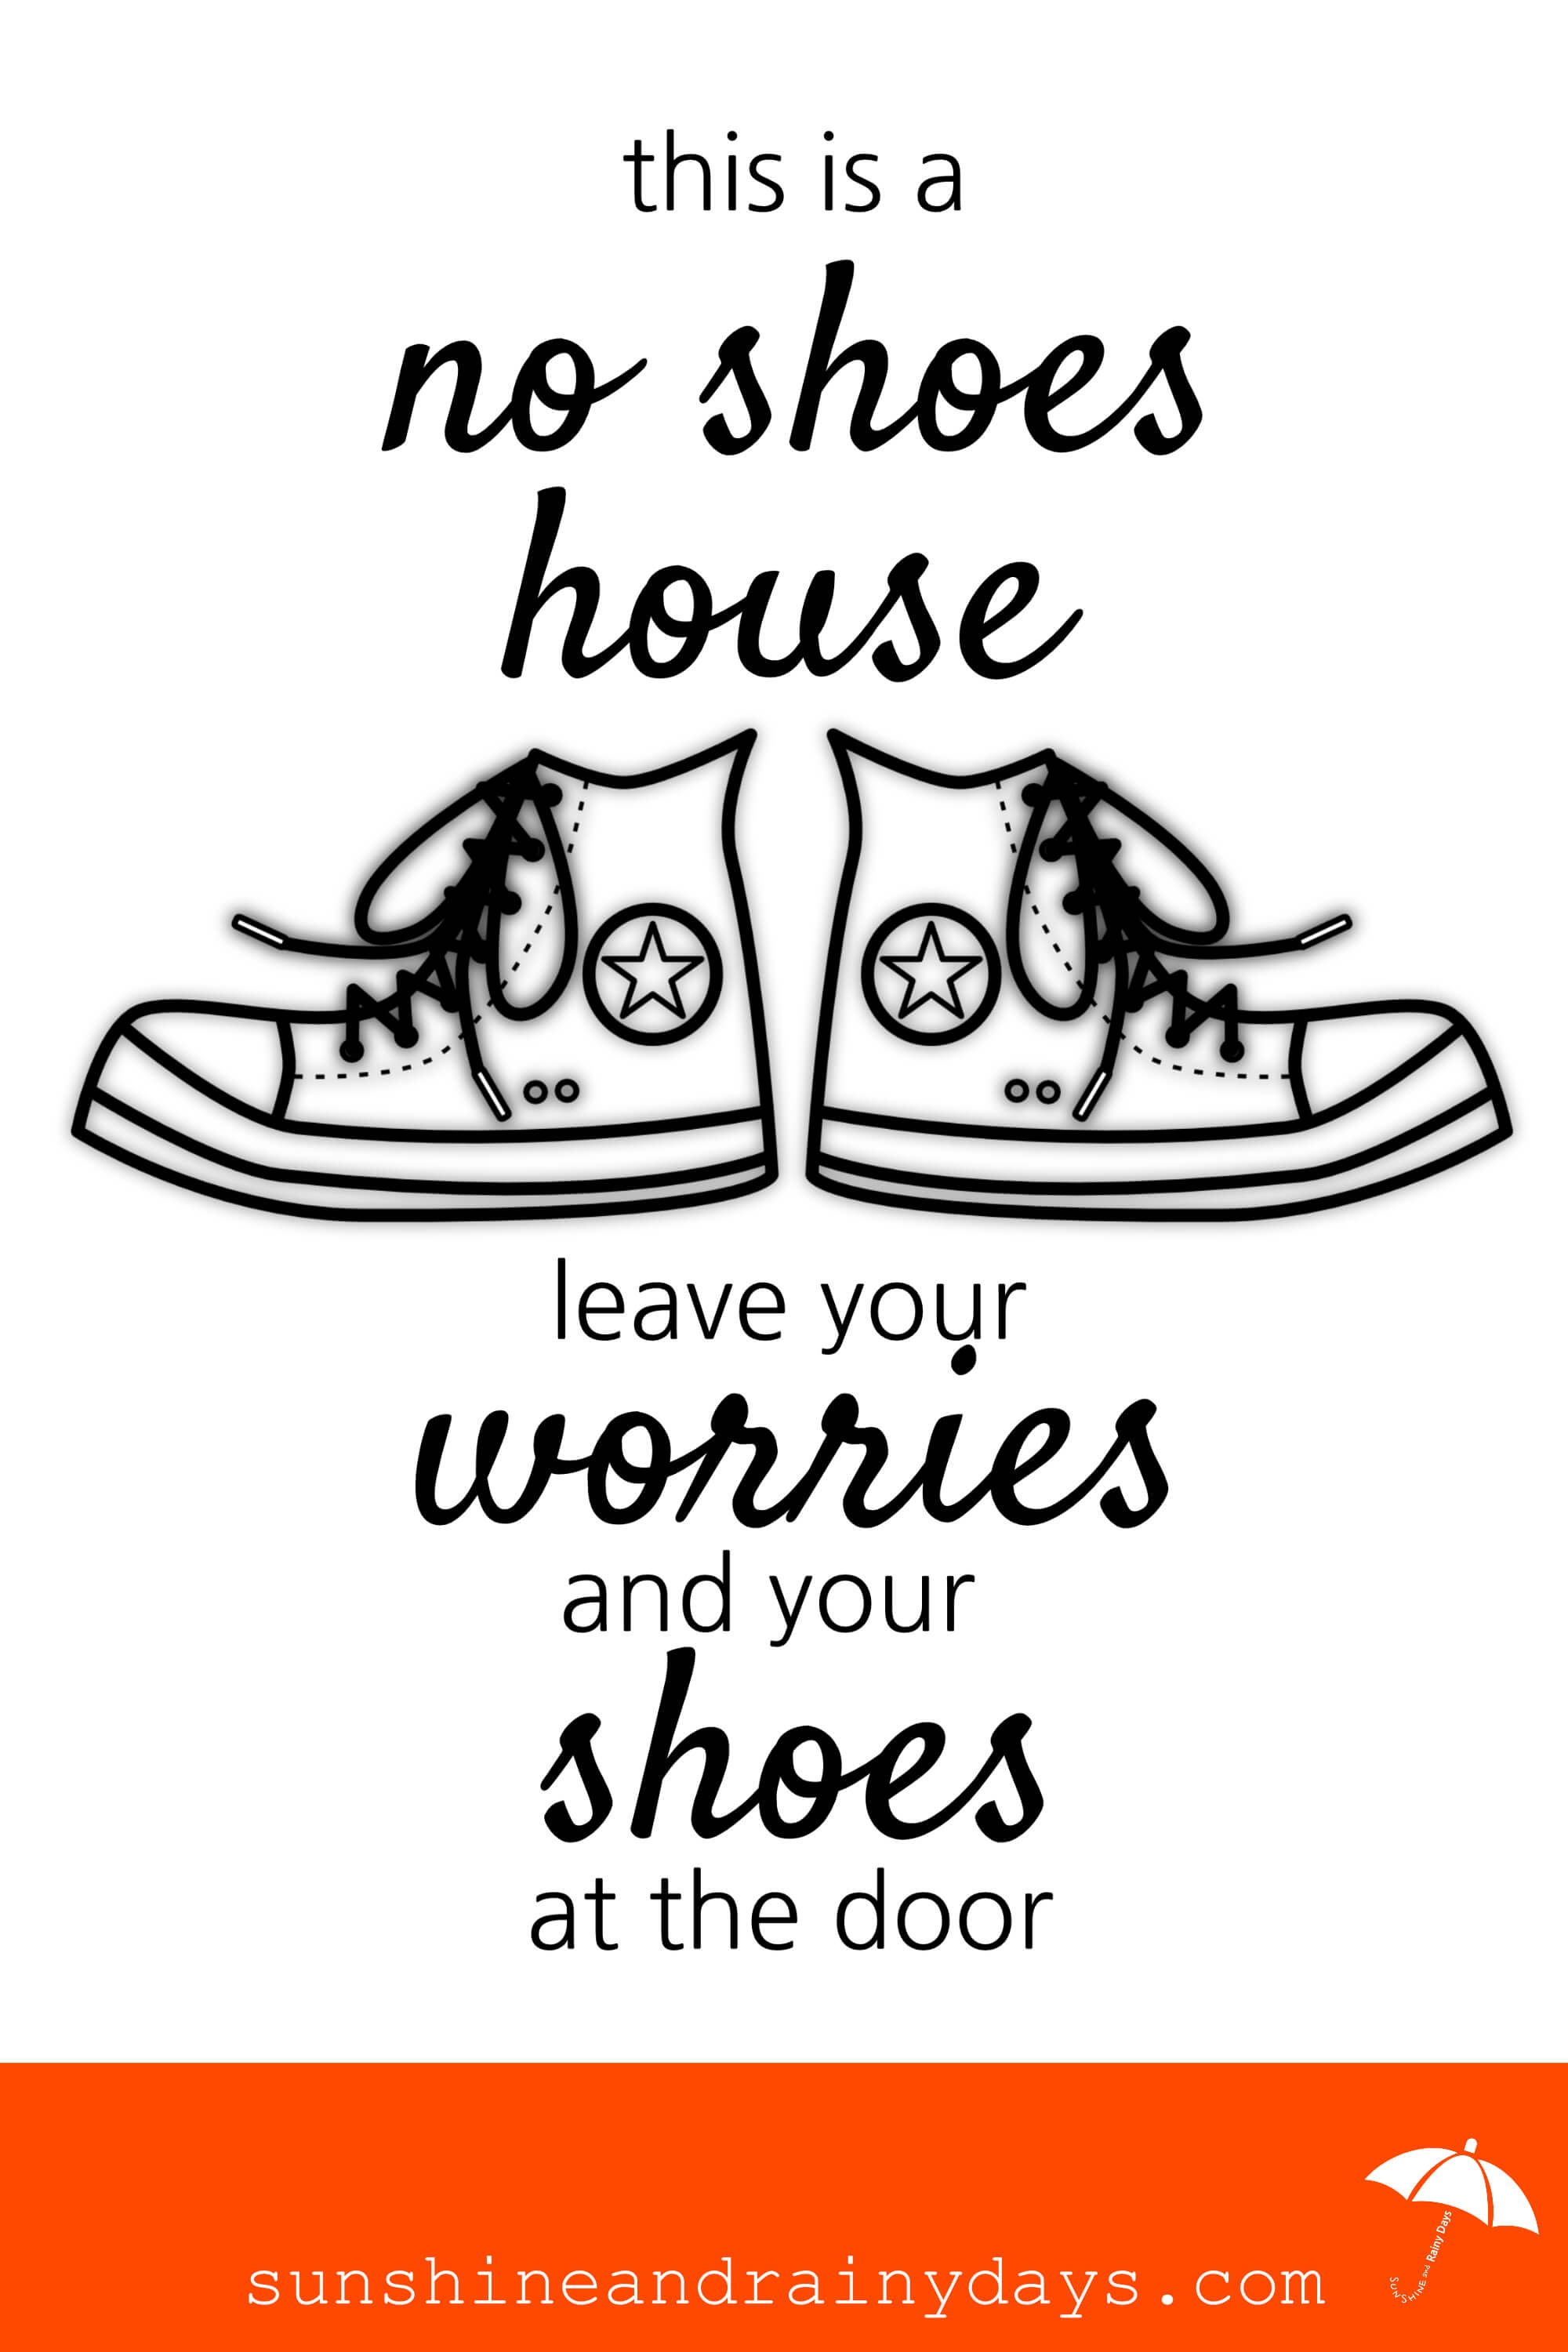 How To Get People To Take Their Shoes Off At The Door - Sunshine And - Free Printable Remove Your Shoes Sign